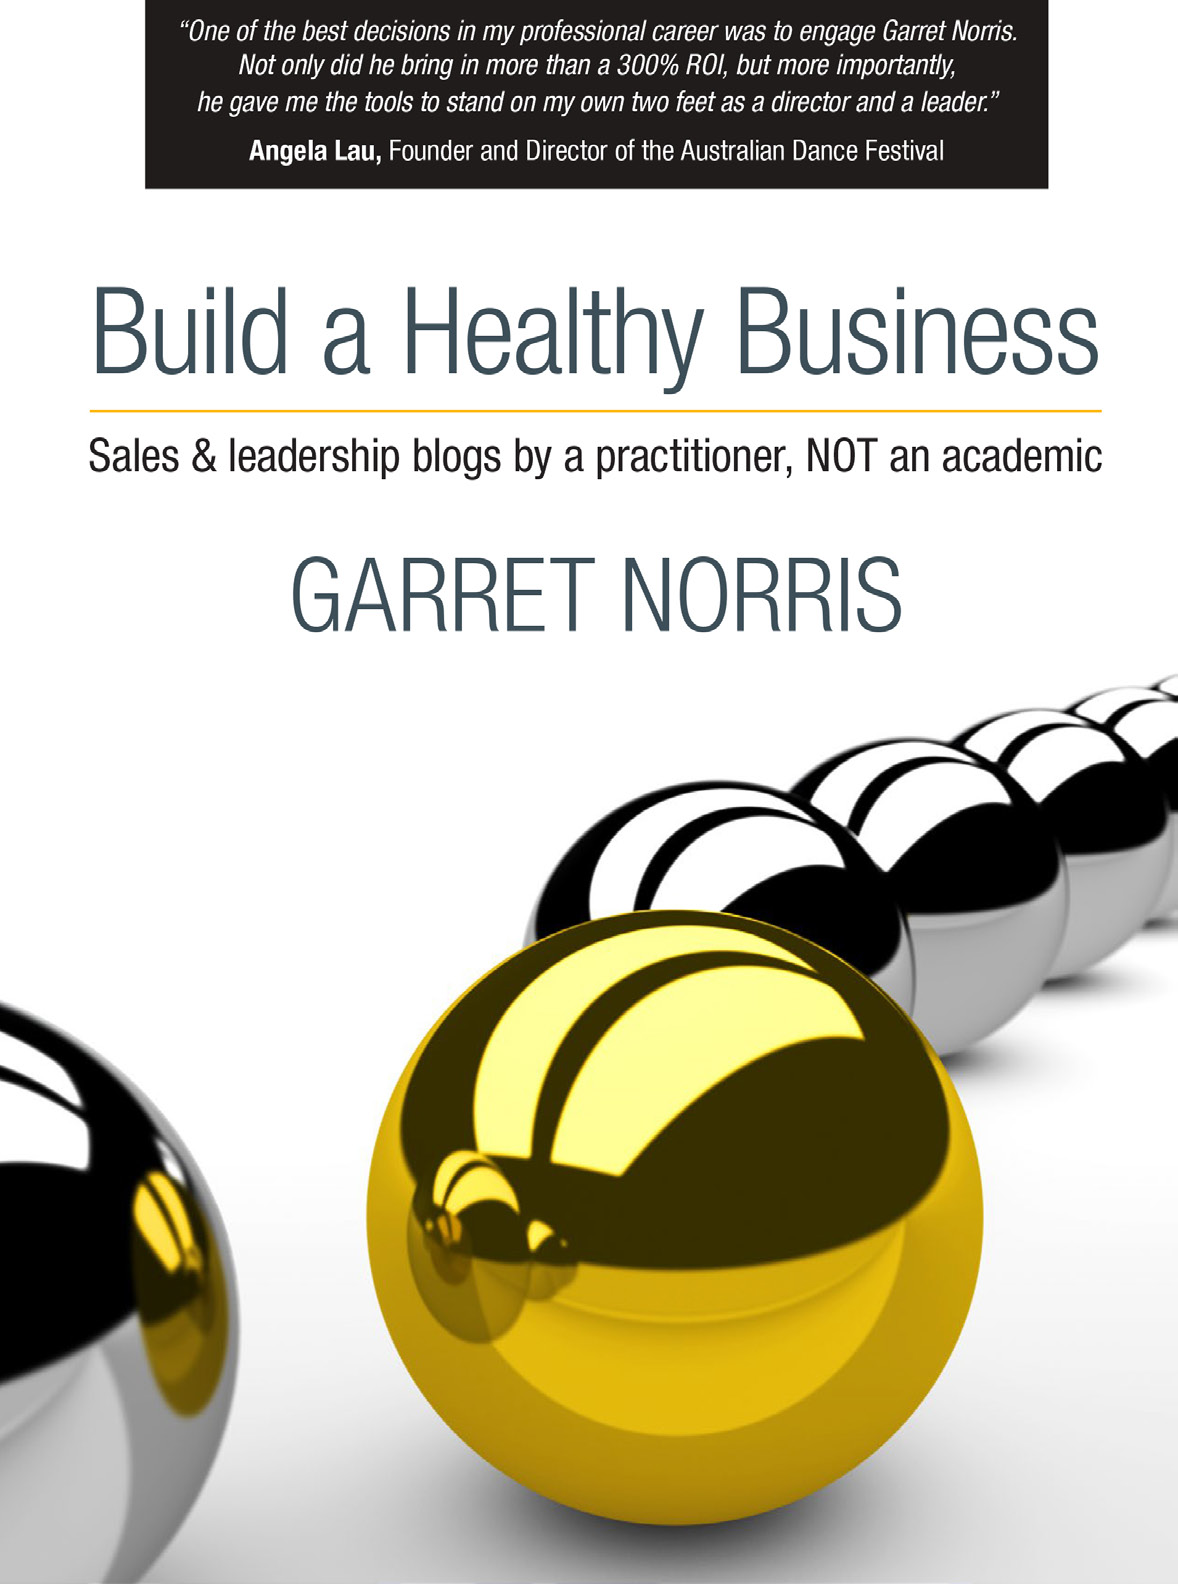 Build a Healthy Business – sales & leadership blogs by a practitioner, NOT an academic by Garret Norris